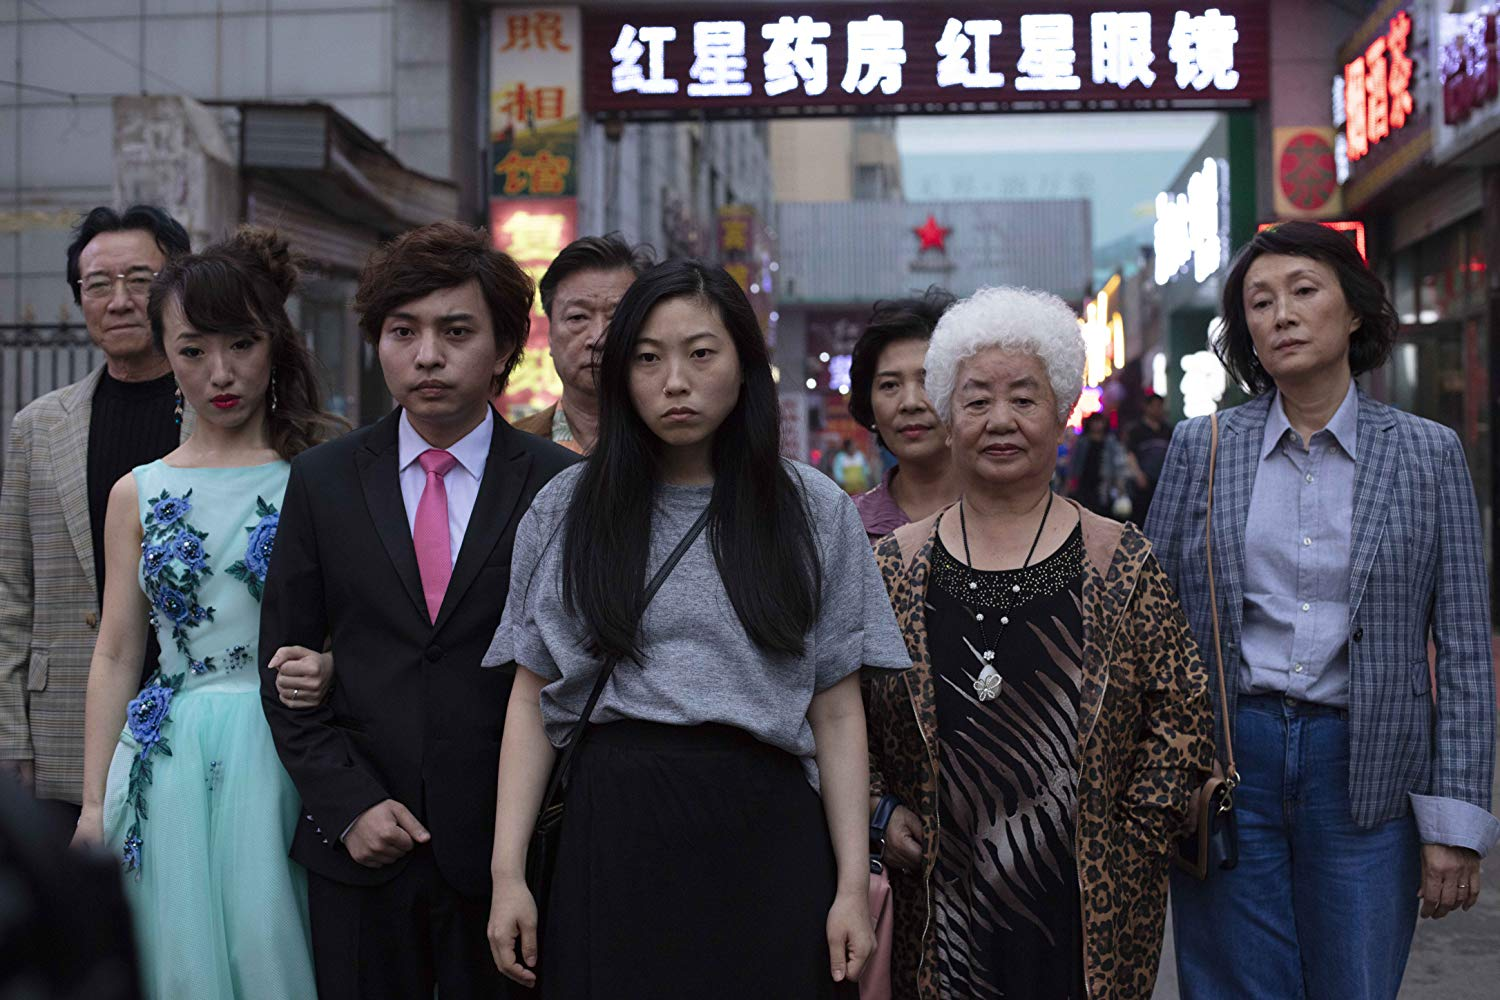 Tzi Ma, Shuzhen Zhao, Han Chen, Aoi Mizuhara, Hong Lu, Diana Lin, and Awkwafina in The Farewell (2019)